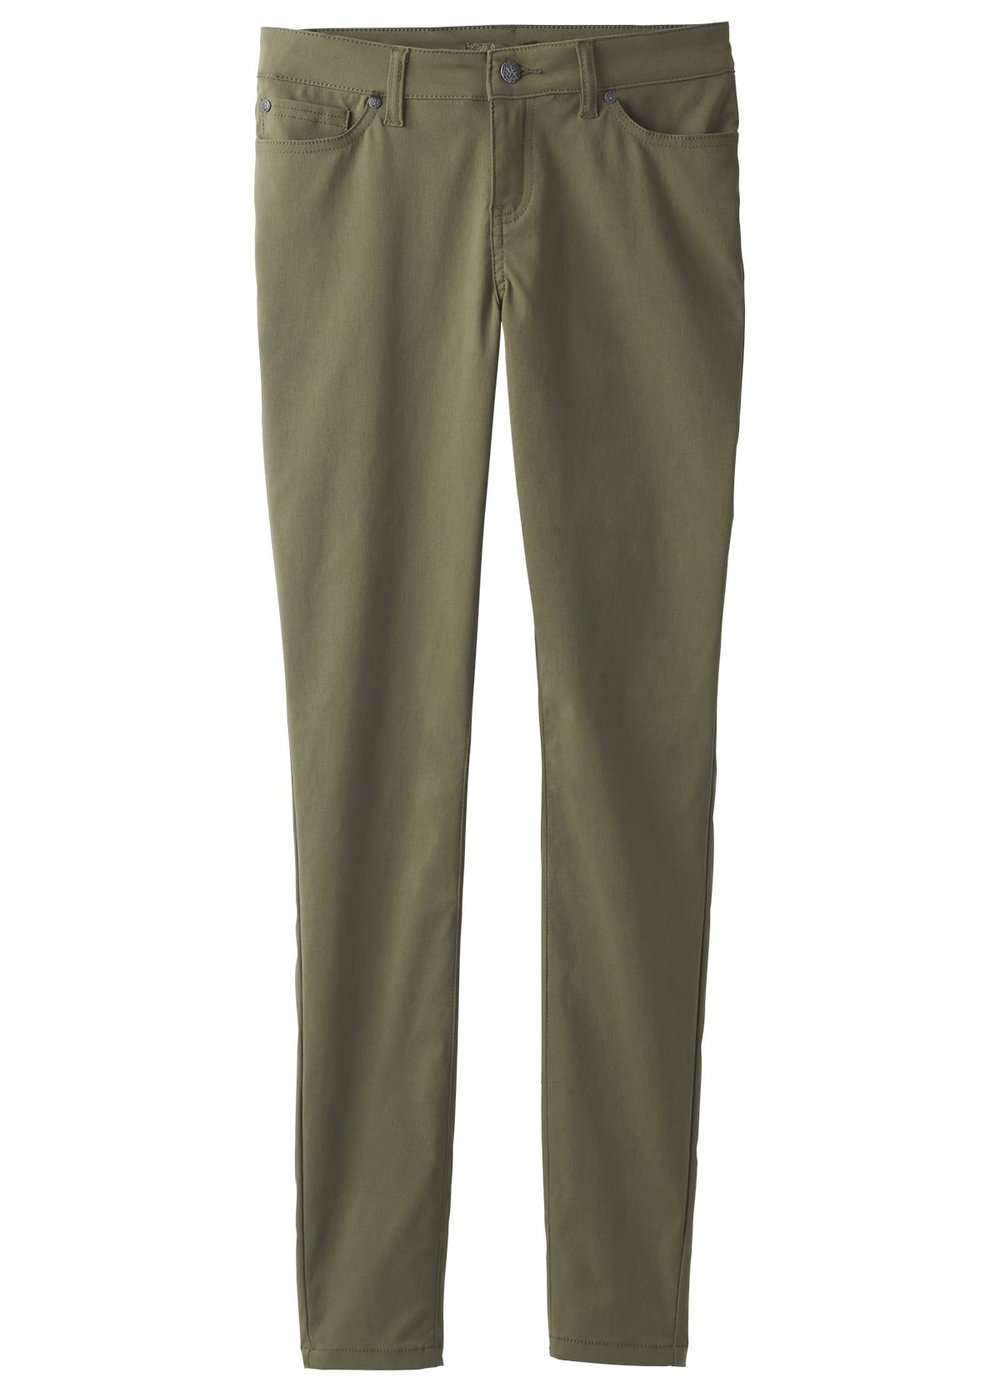 Prana Briann Pant     The Meme pant is running low until they restock again, but the Briann pant comes in the same material and similar colors. Also comes in short, regular, and long lengths.